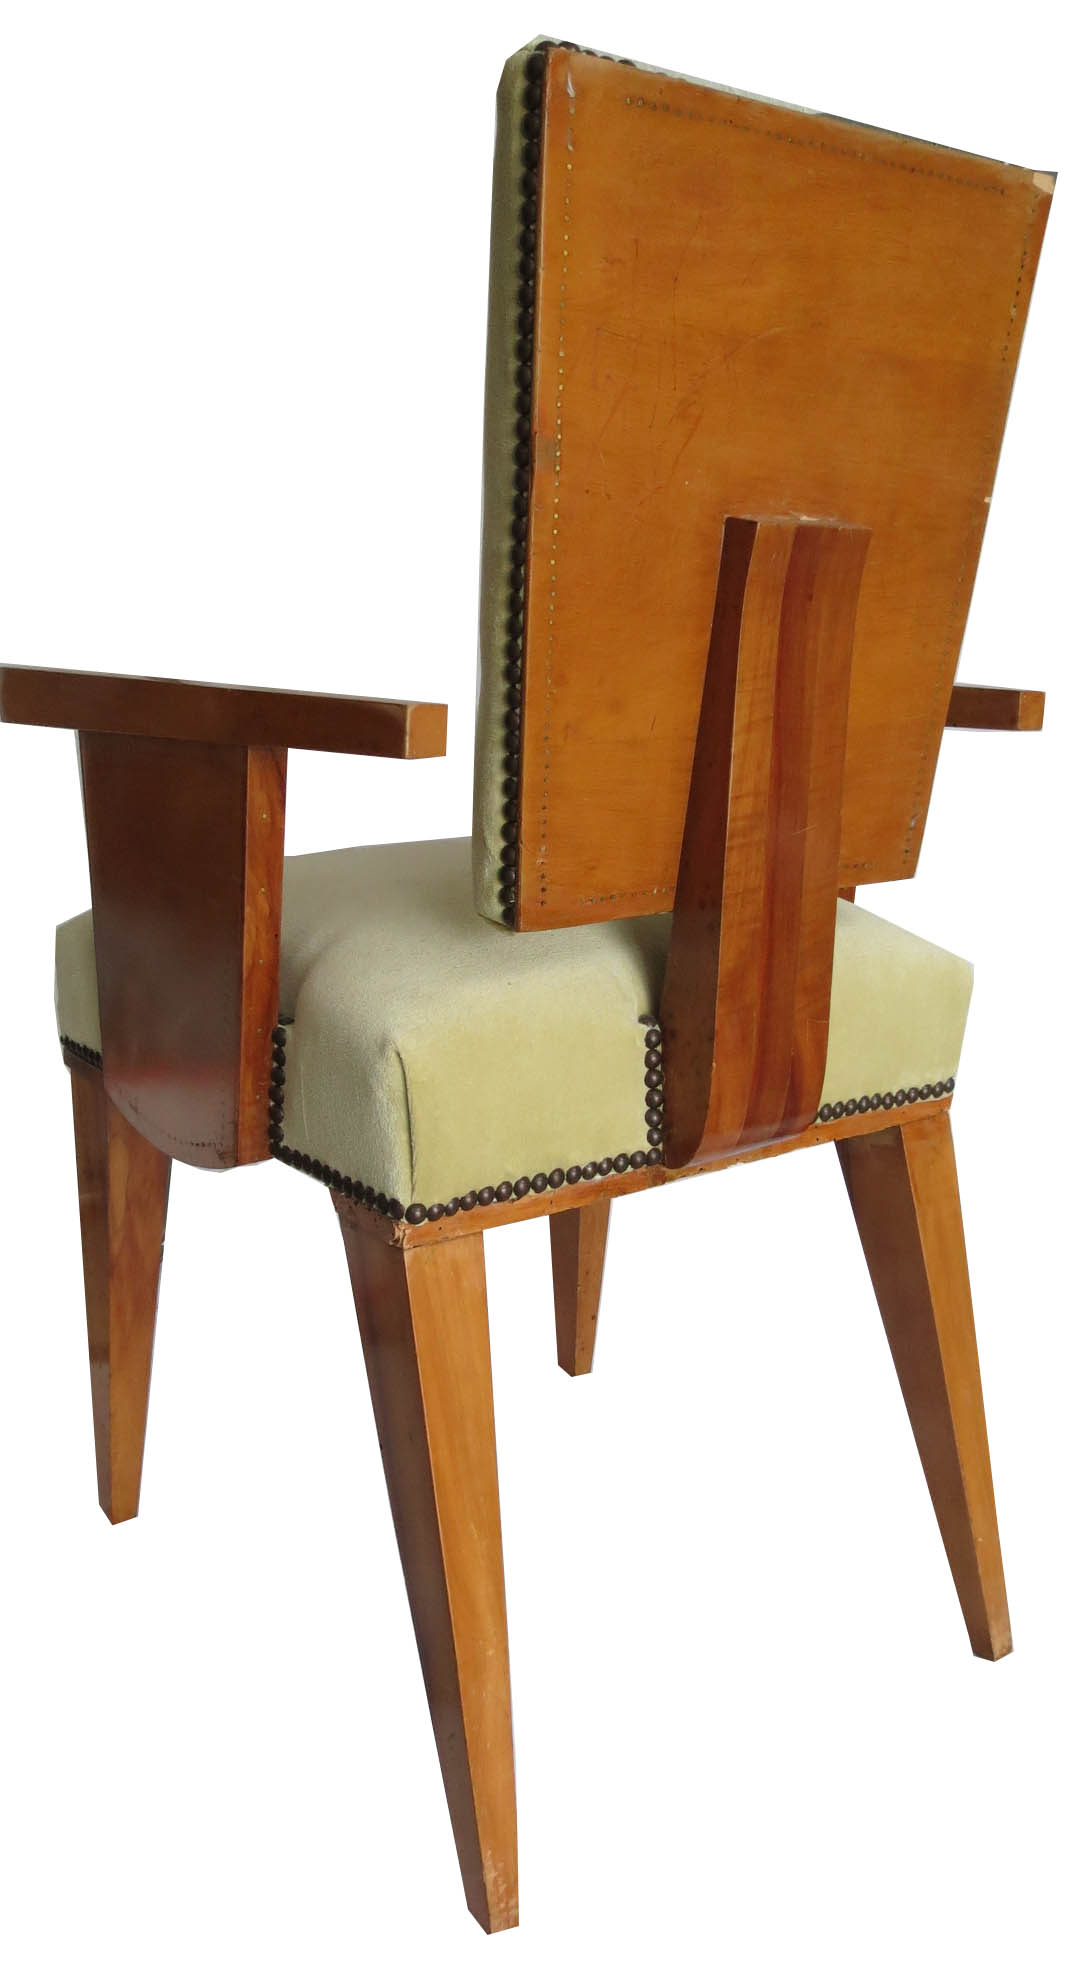 Pair of French Art Deco Arm Chairs by Andre Sornay  Modernism